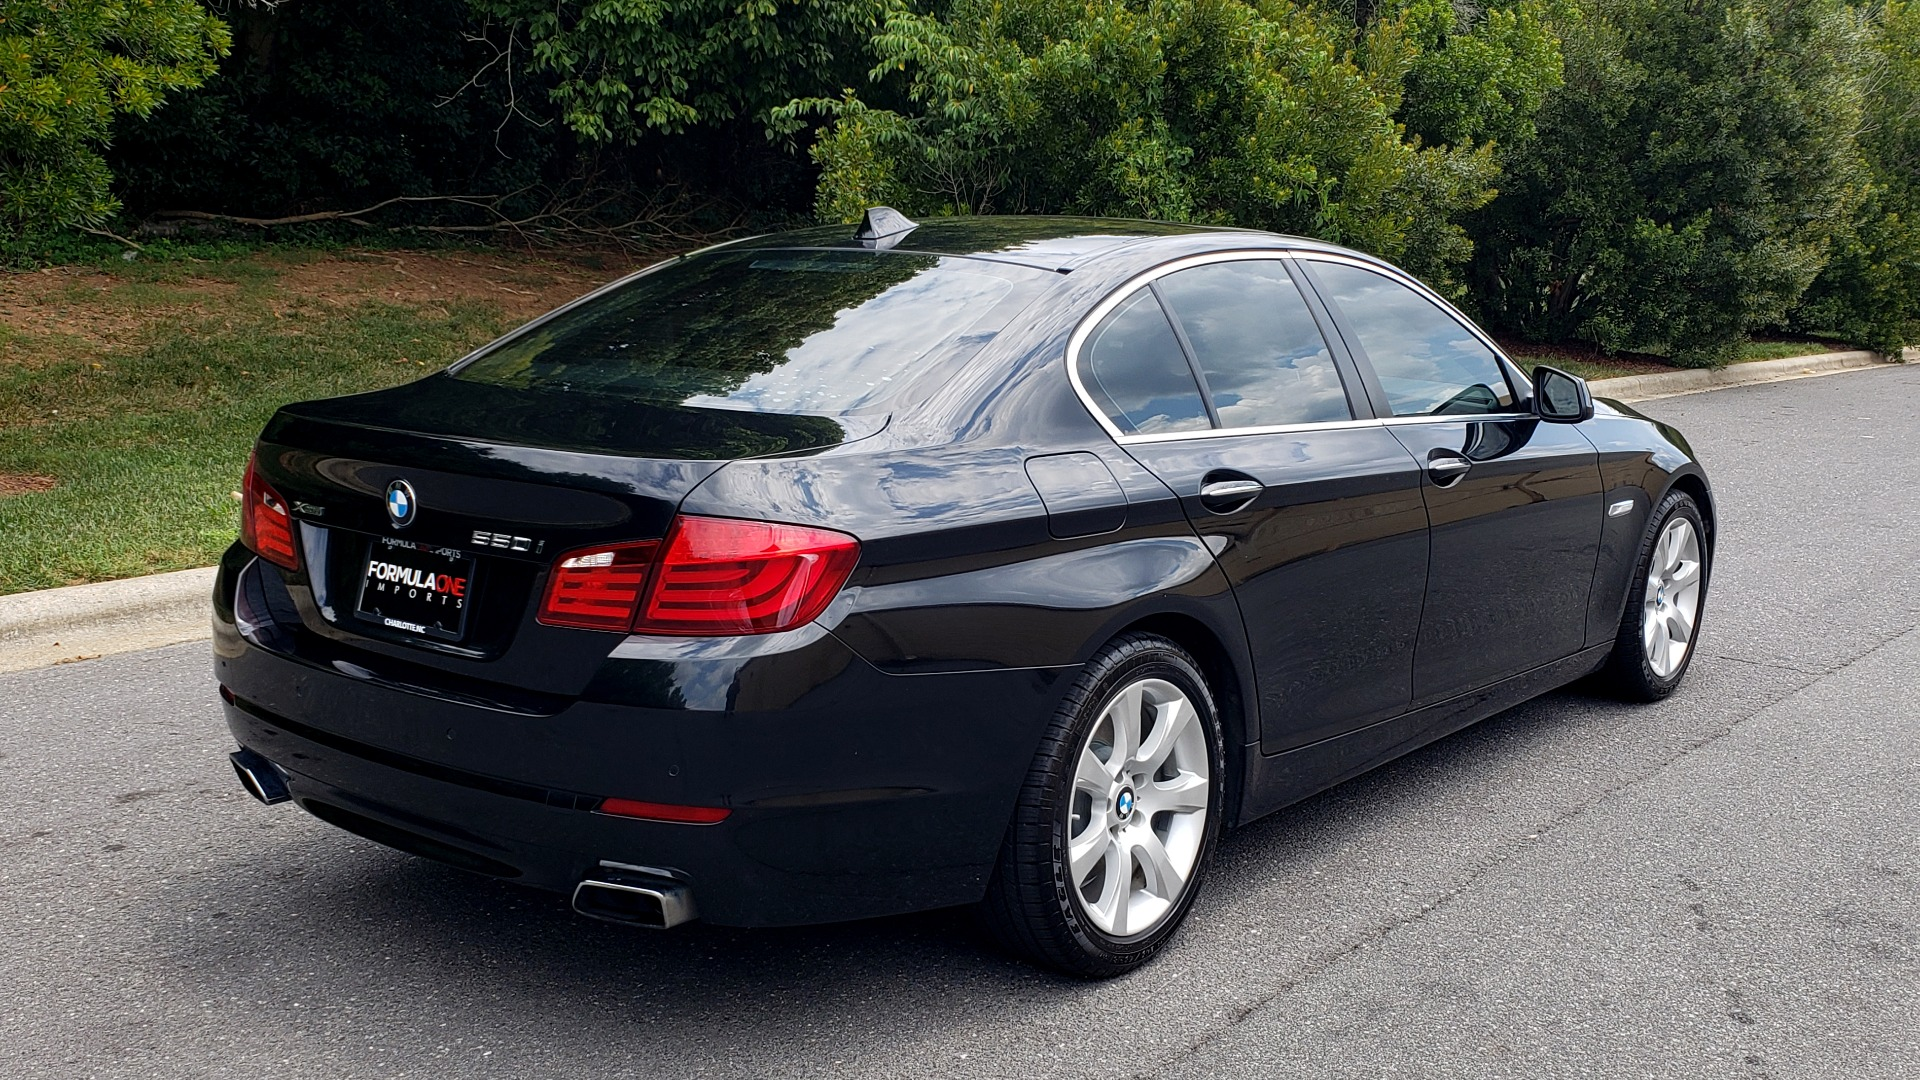 Used 2013 BMW 5 SERIES 550I XDRIVE LUX PKG / EXEC / COLD WTHR / NAV / SUNROOF / REARVIEW for sale Sold at Formula Imports in Charlotte NC 28227 6